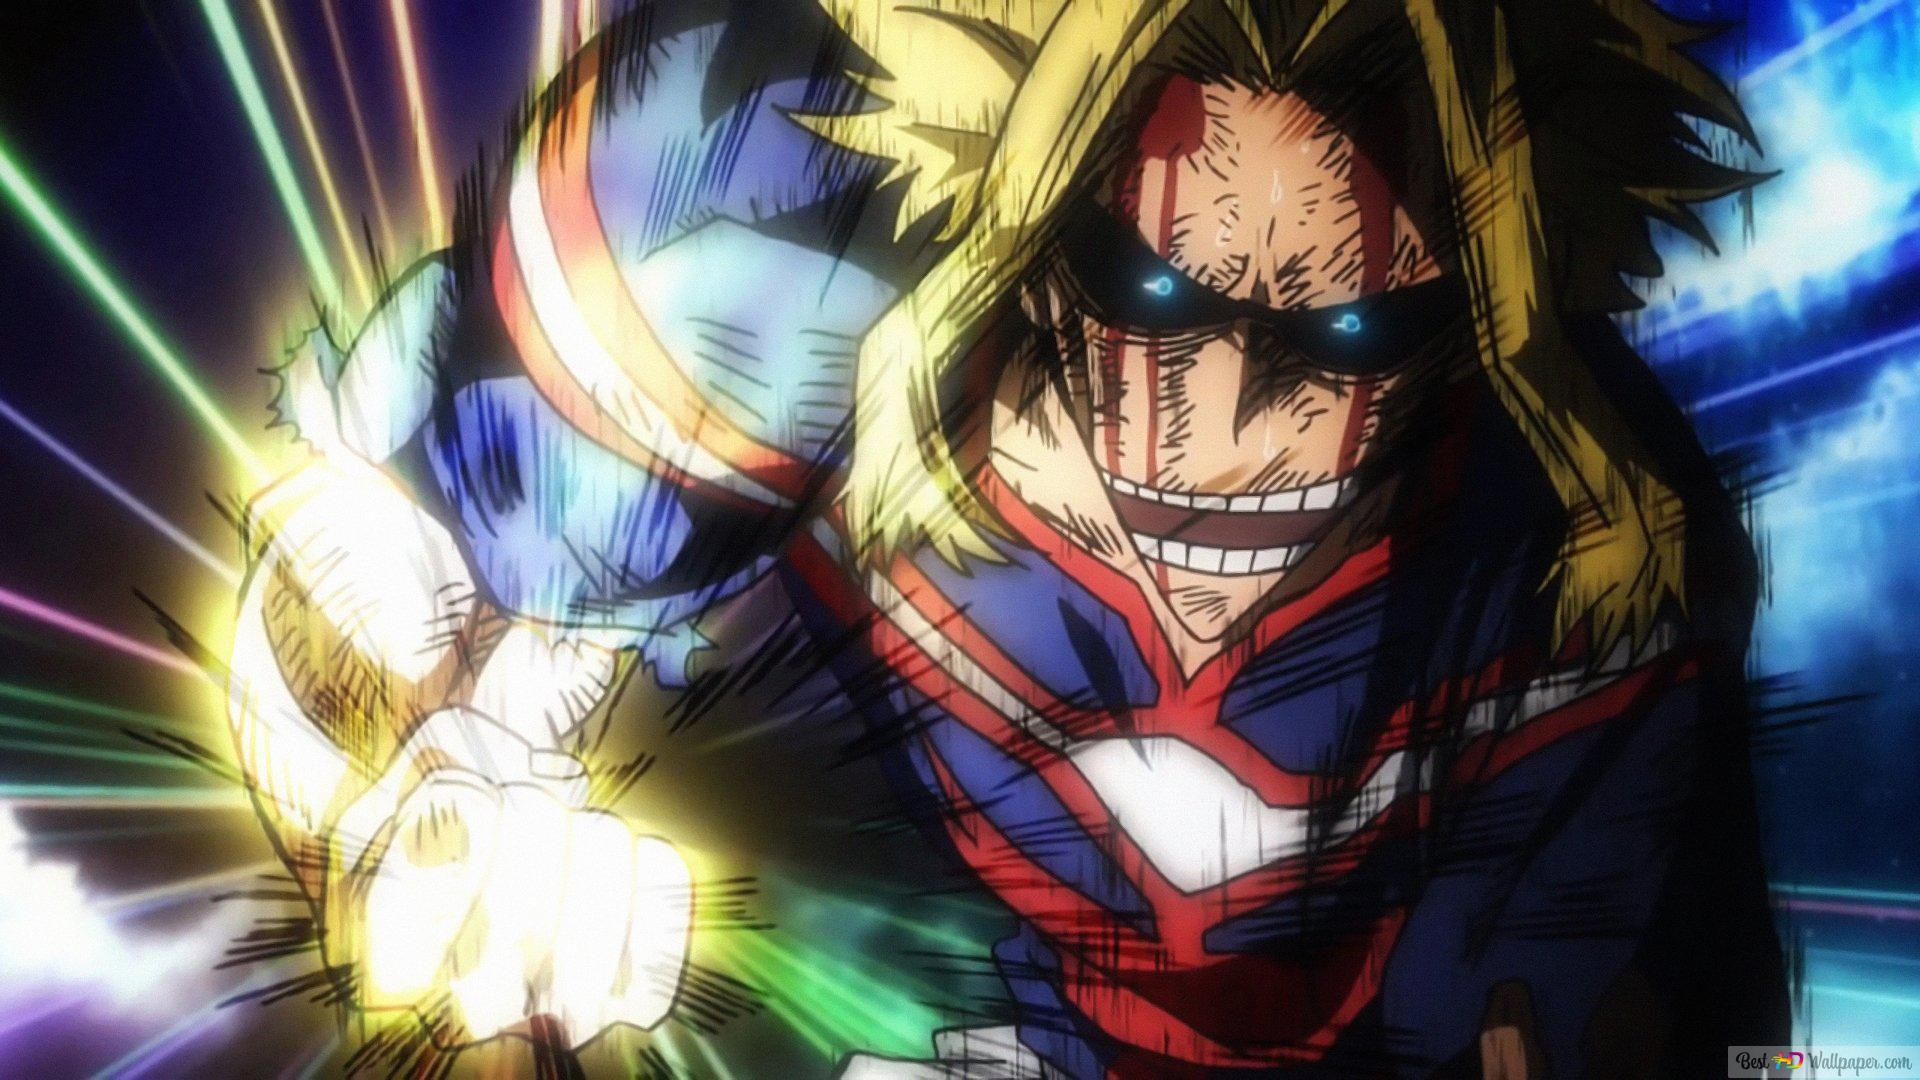 My hero academia - all might HD wallpaper download